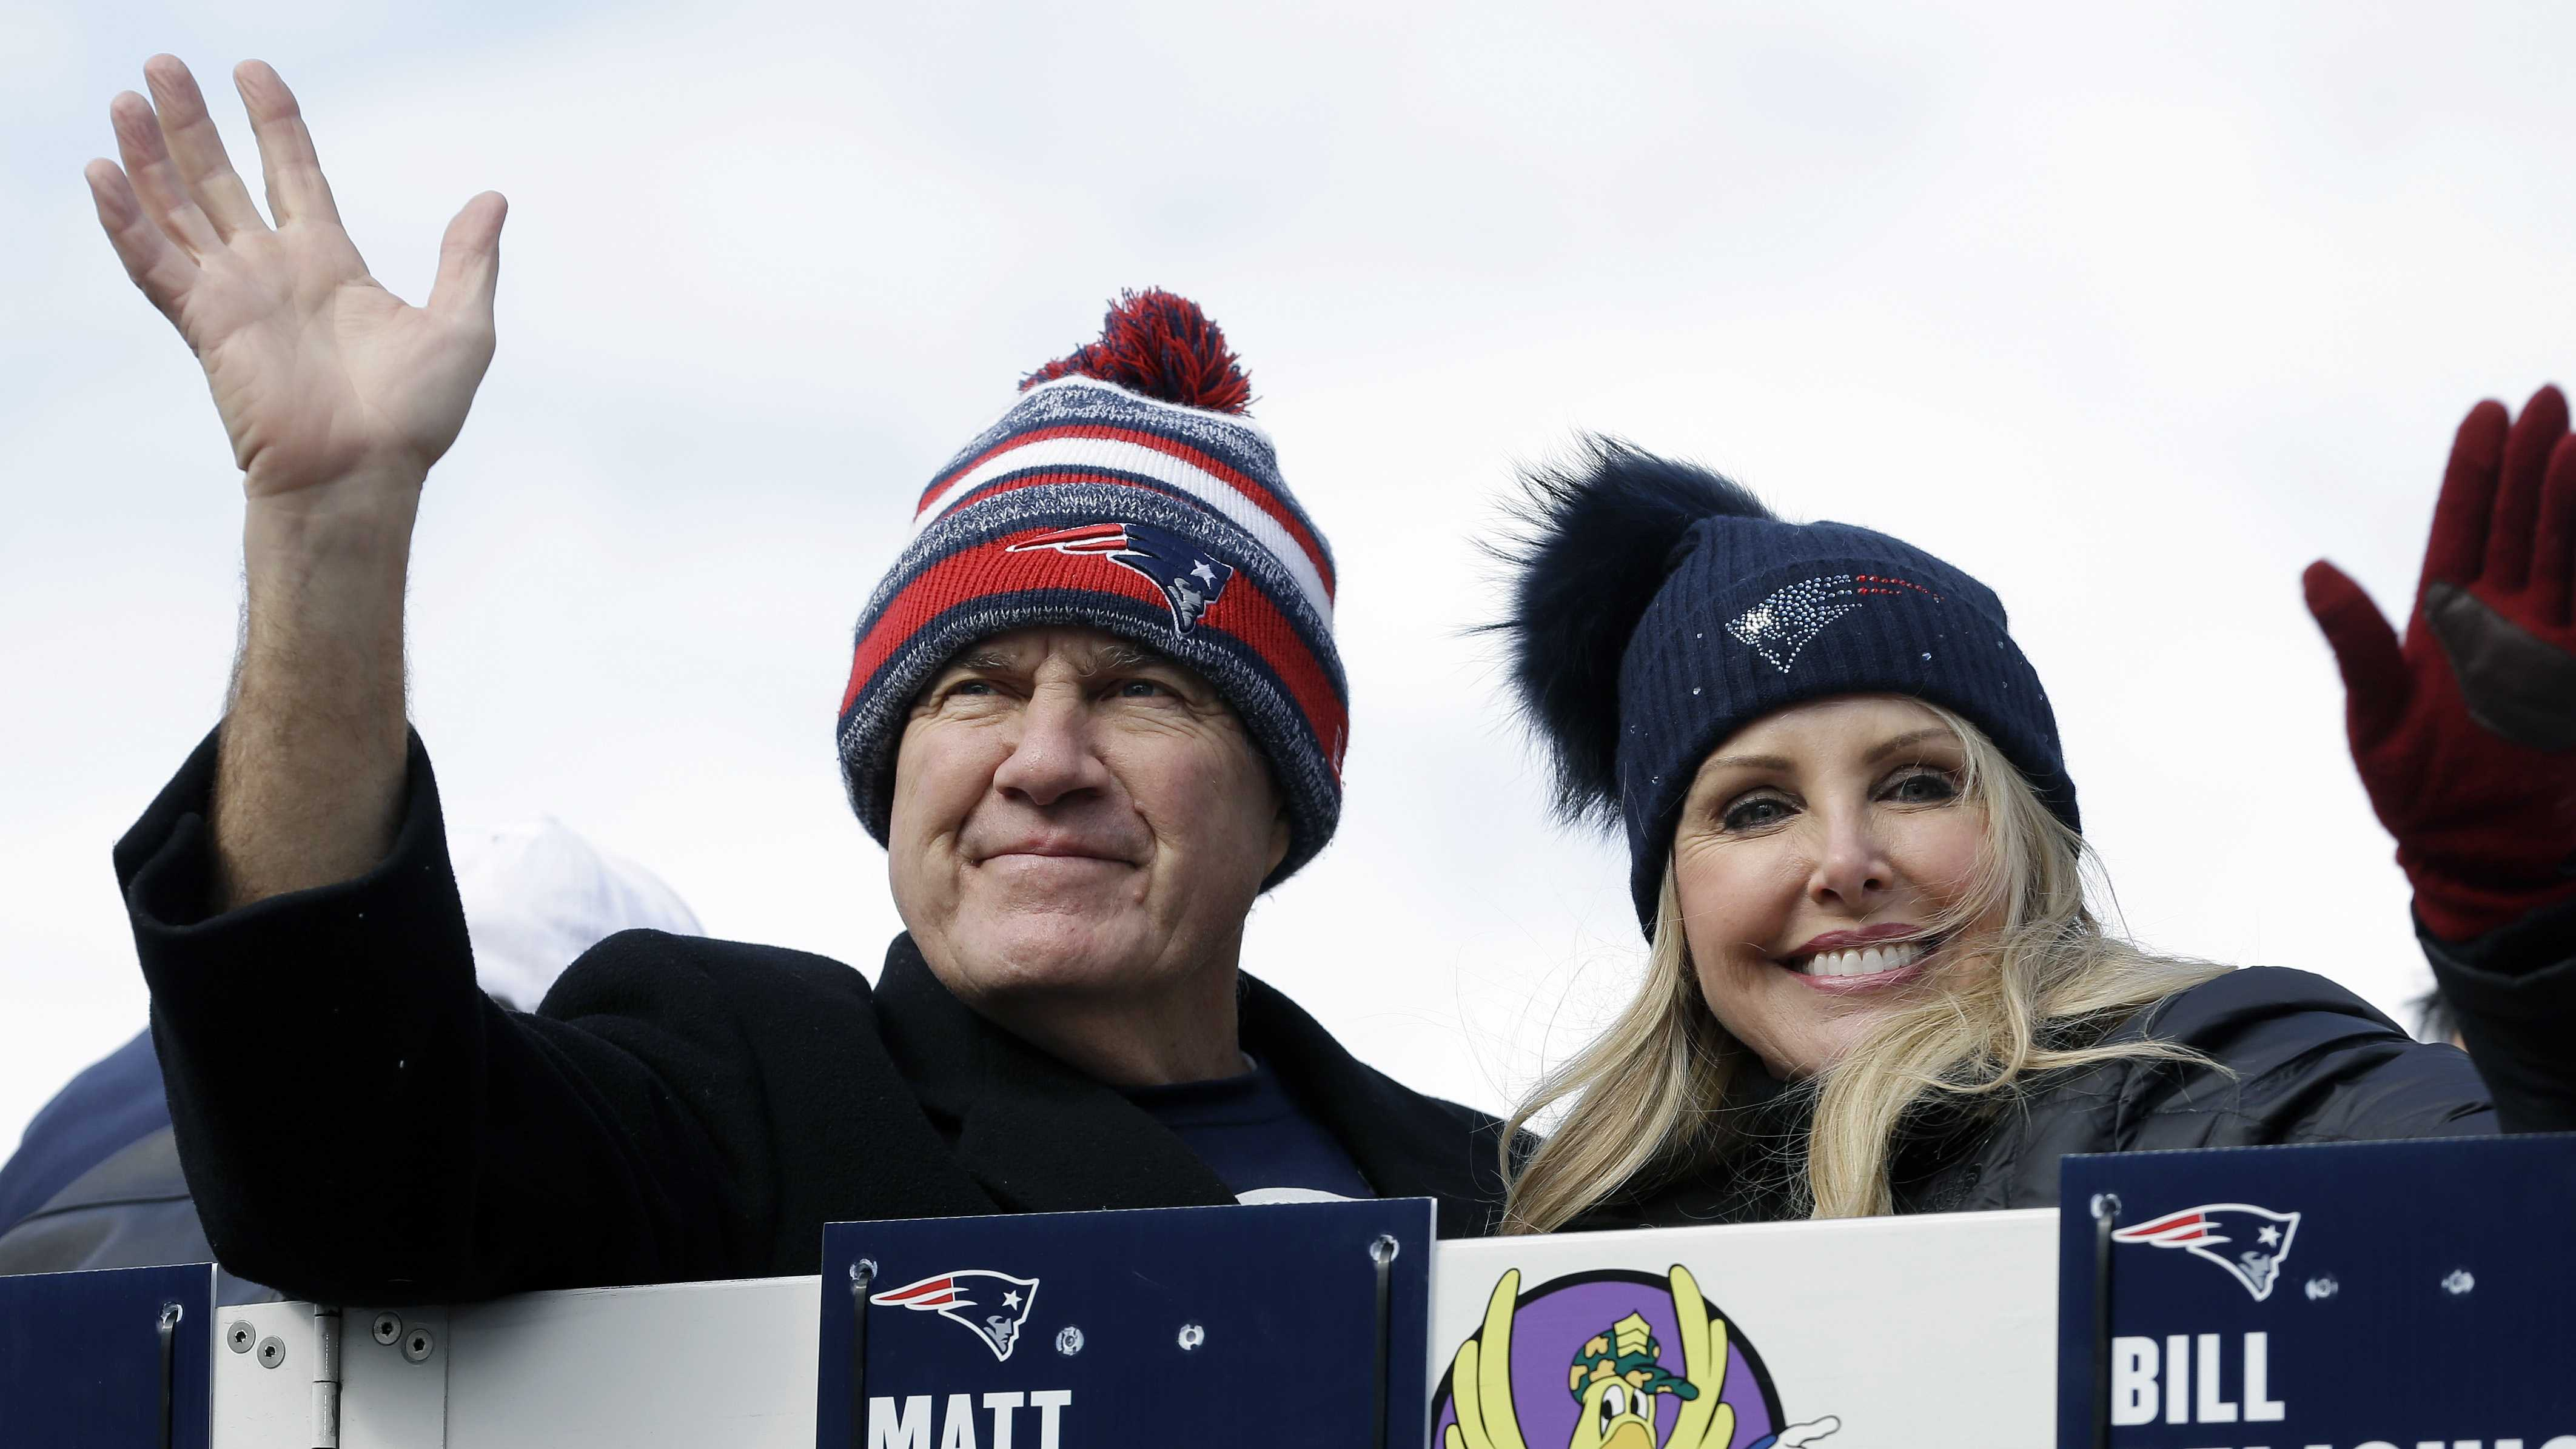 New England Patriots head coach Bill Belichick and his partner Linda Holliday